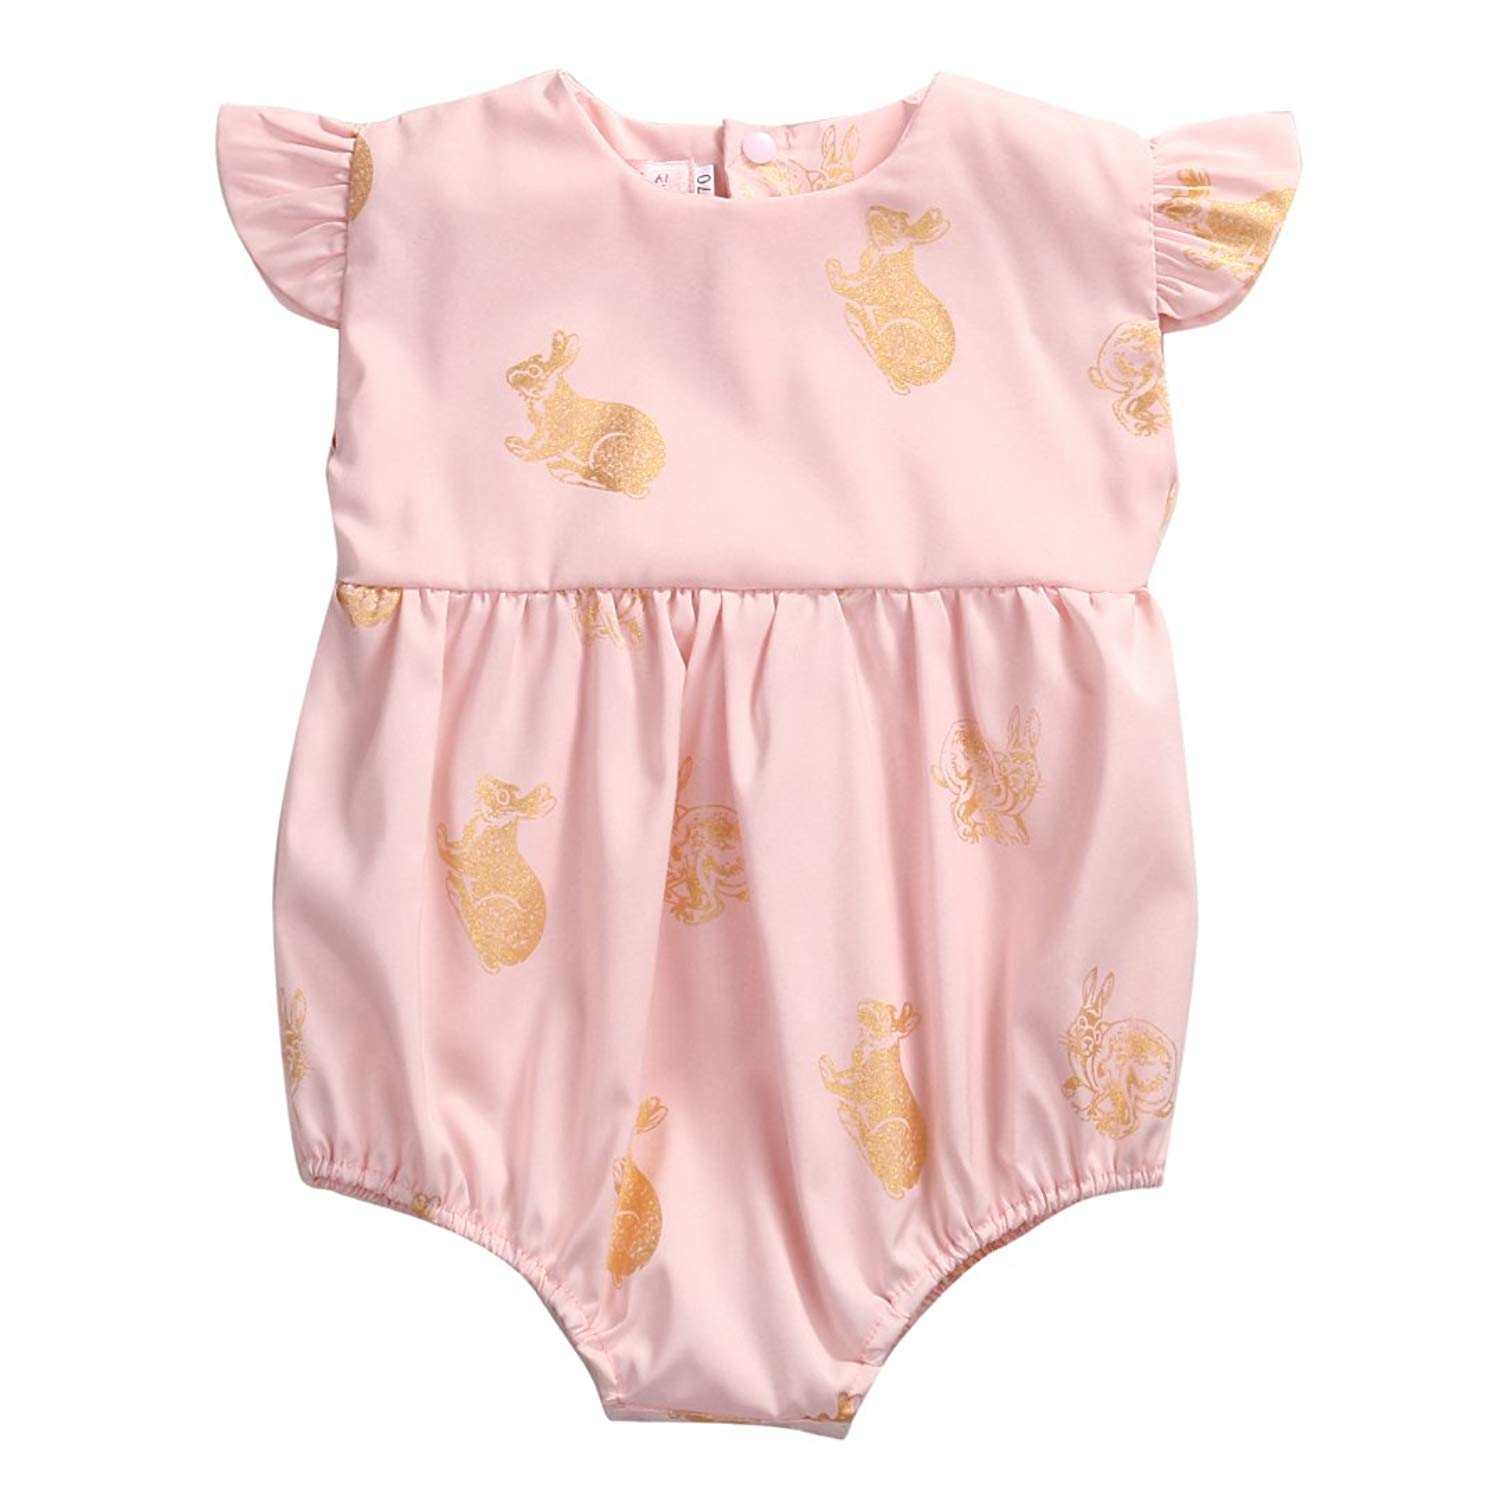 Headband Clothes Outfits Set Tanhangguan Infant Baby Girl Romper Feather Print Sleeveless Tassel Romper Jumpsuit